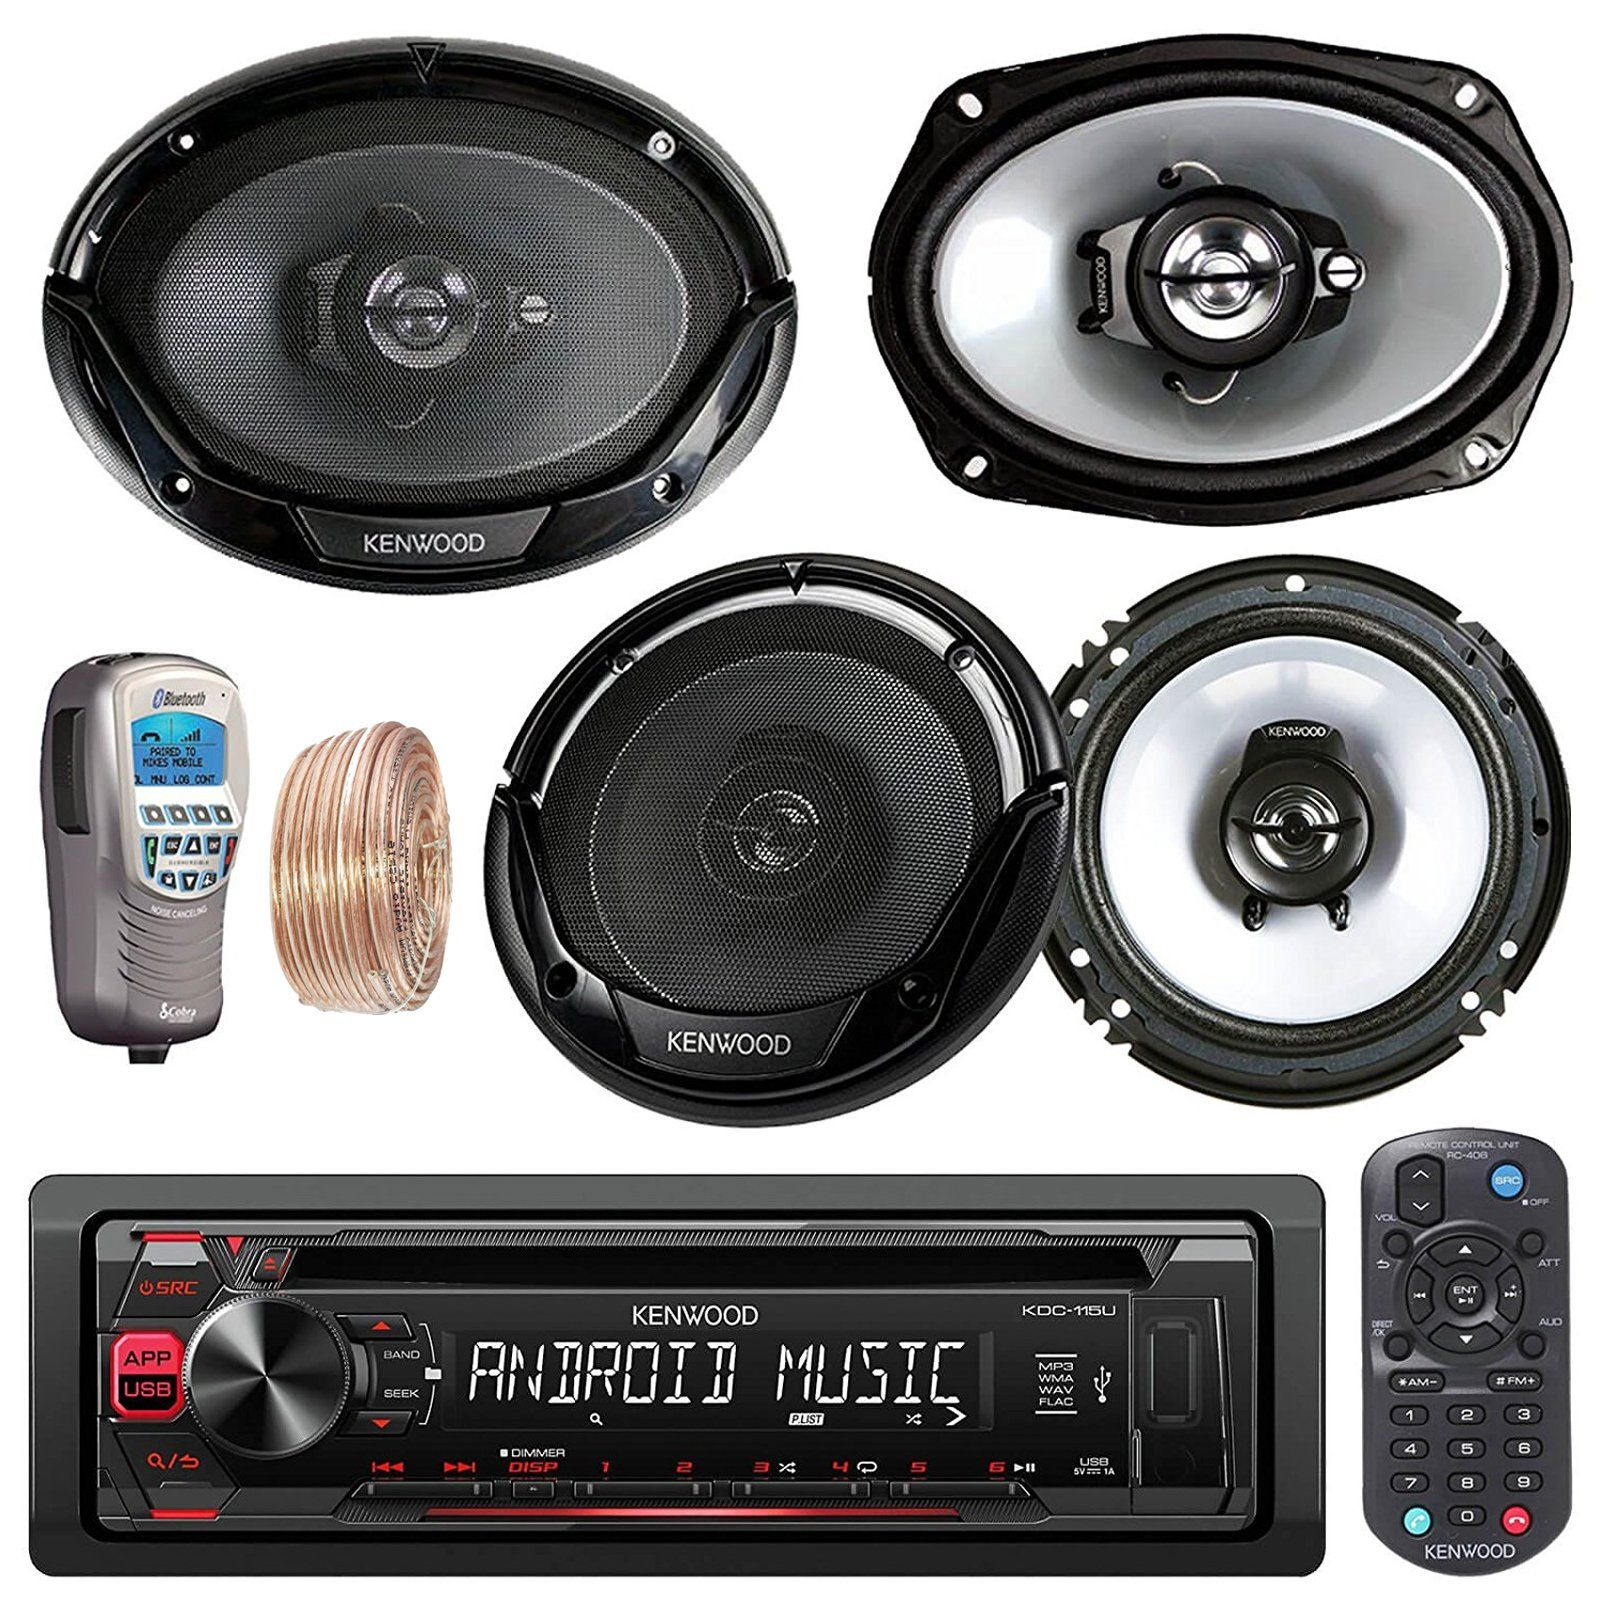 Toyota Tacoma 2015-2018 Service Manual: Sound of Portable Player cannot be Heard from Speakers or Sound is Low